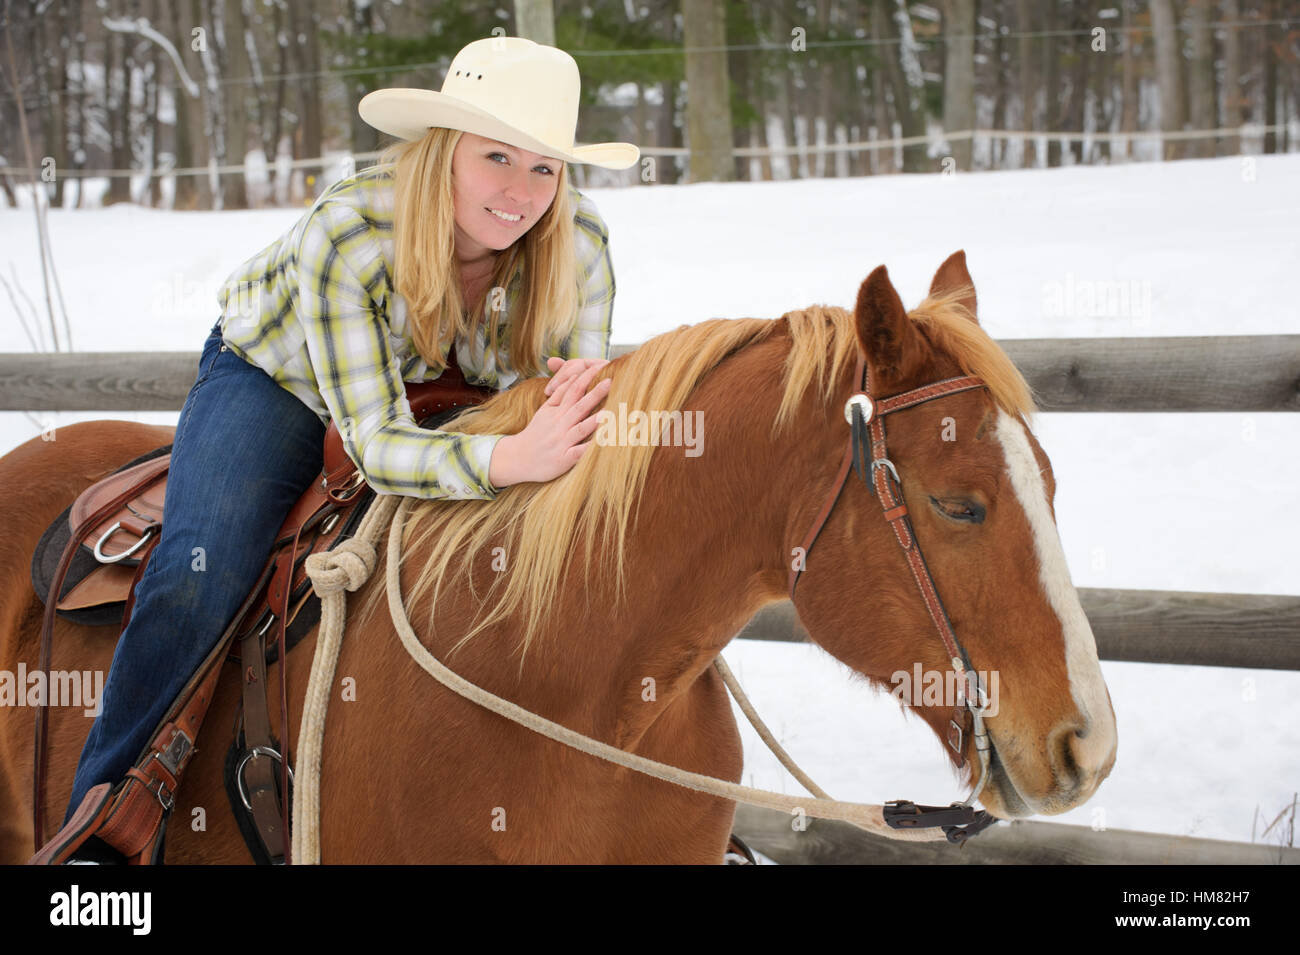 Western Riding Attire High Resolution Stock Photography And Images Alamy